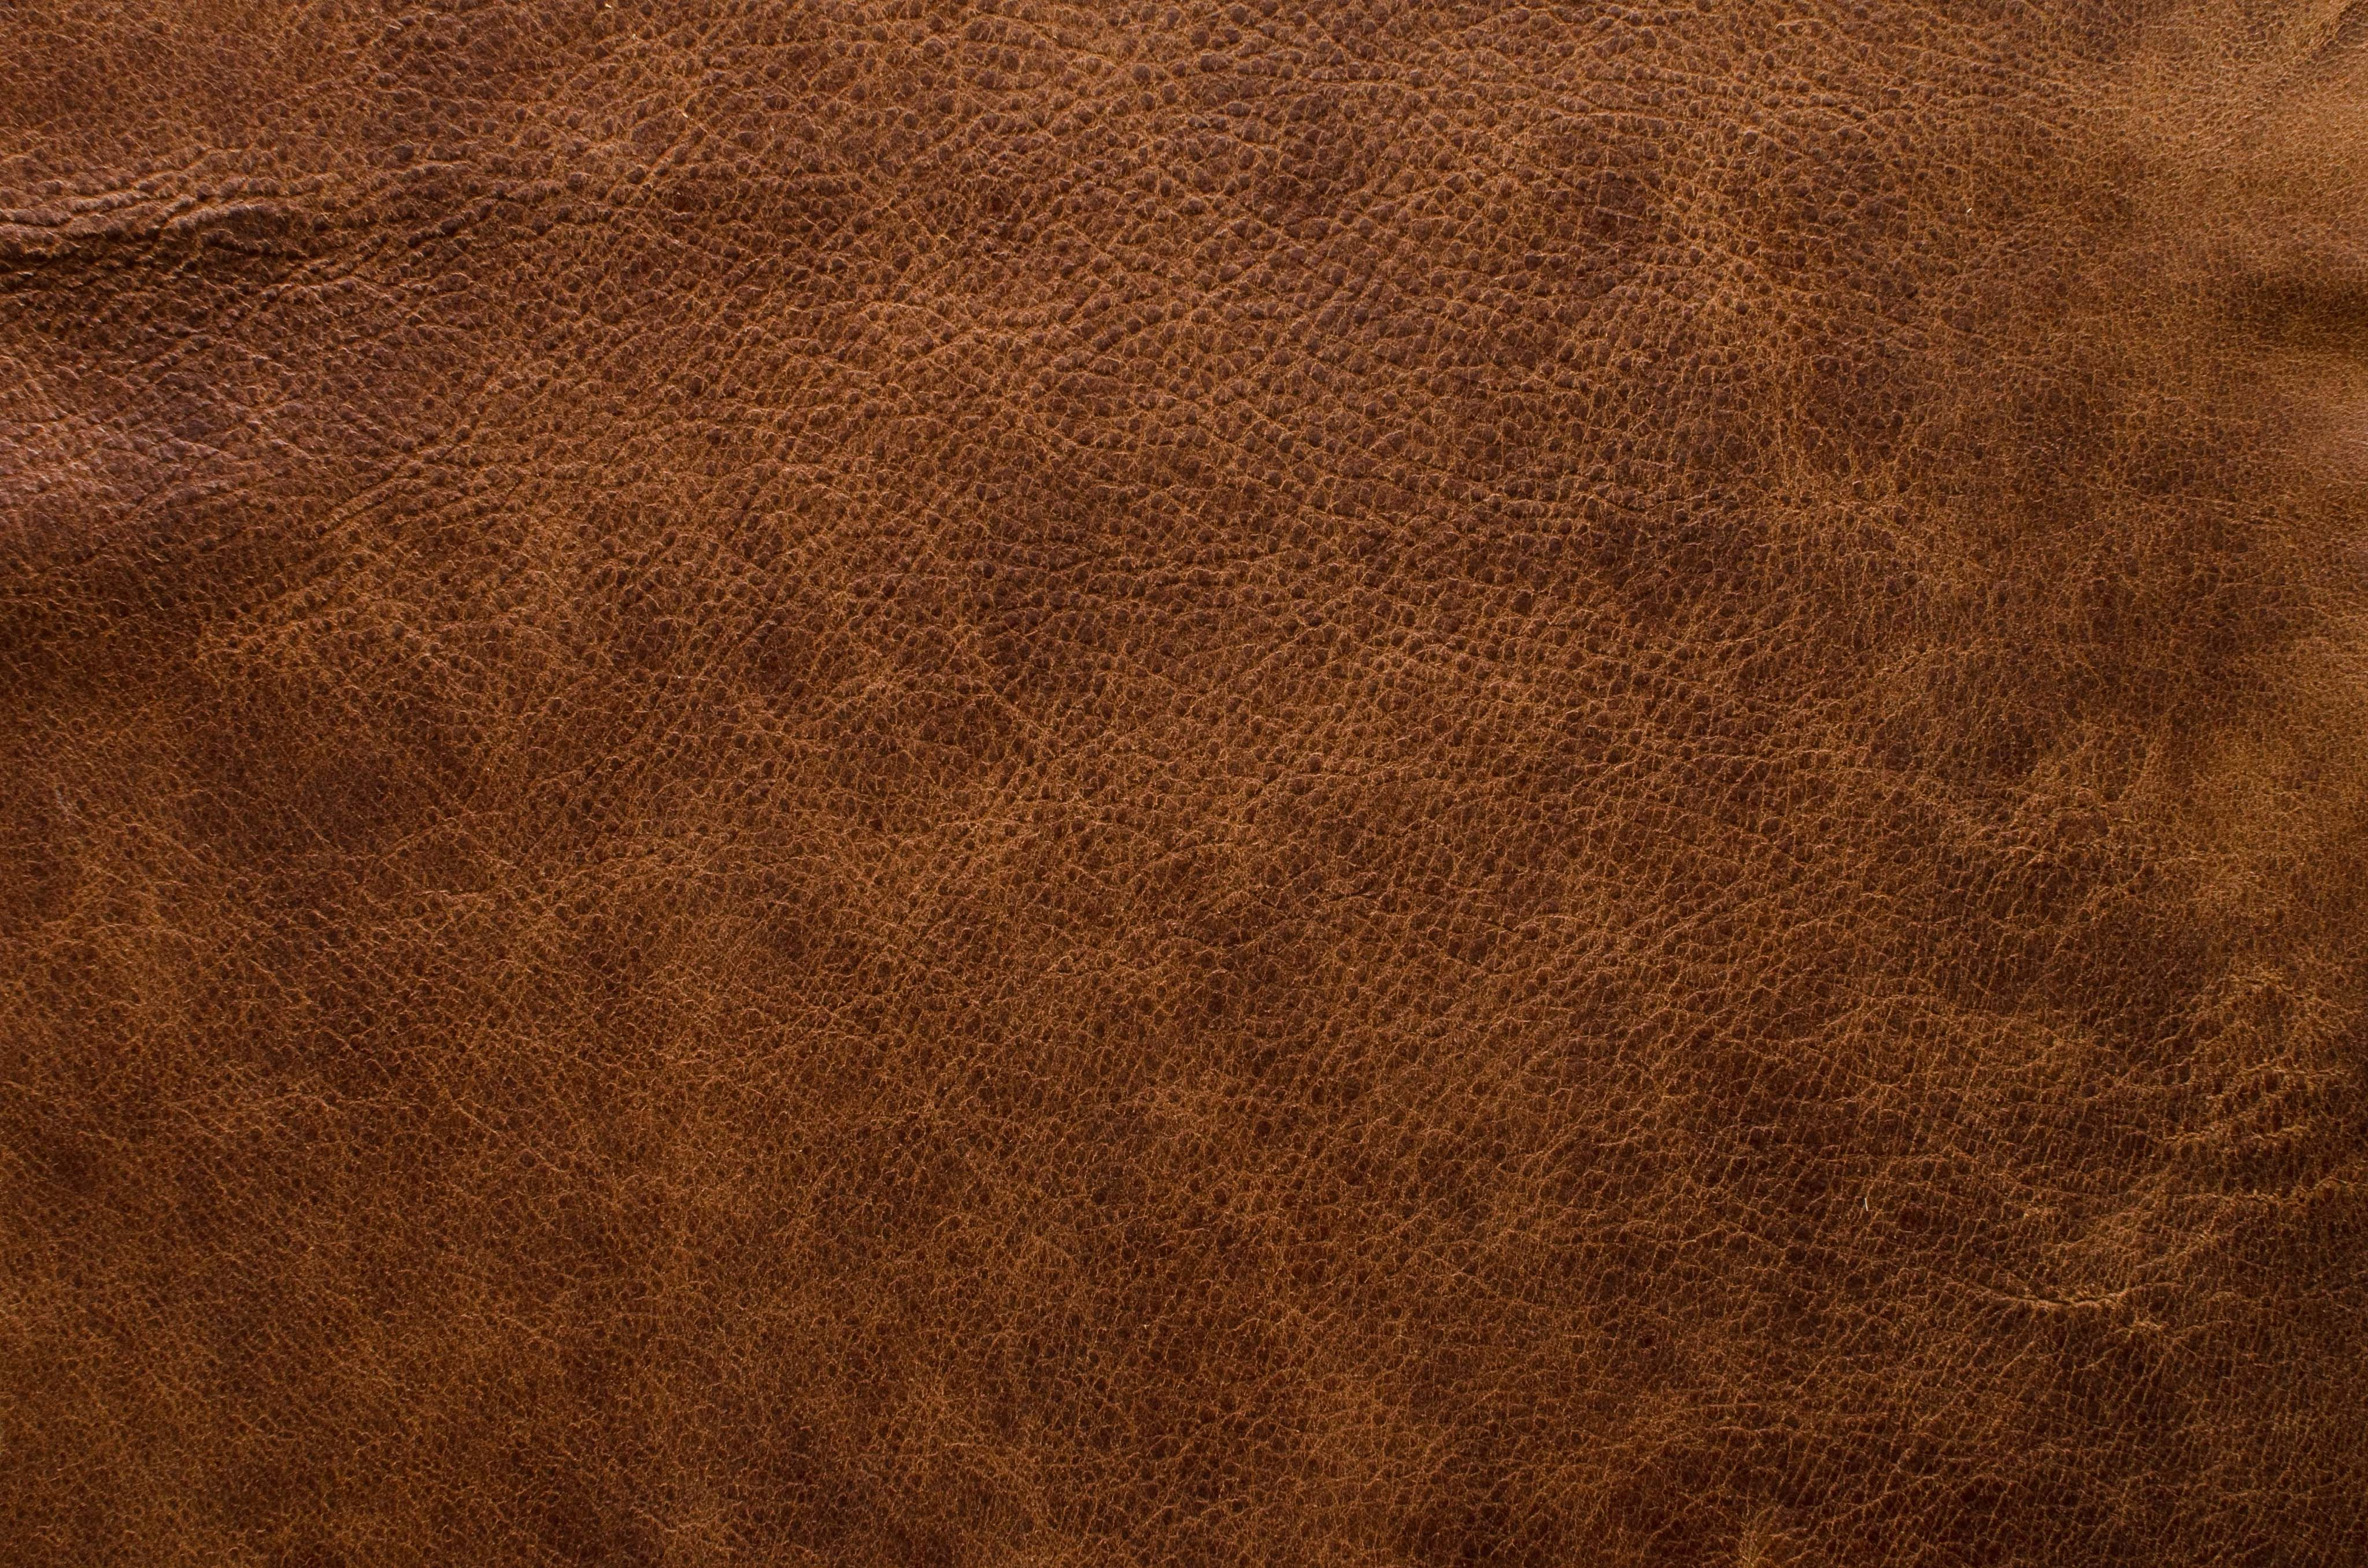 Leather Texture - Google Search  Textures  Leather -3511